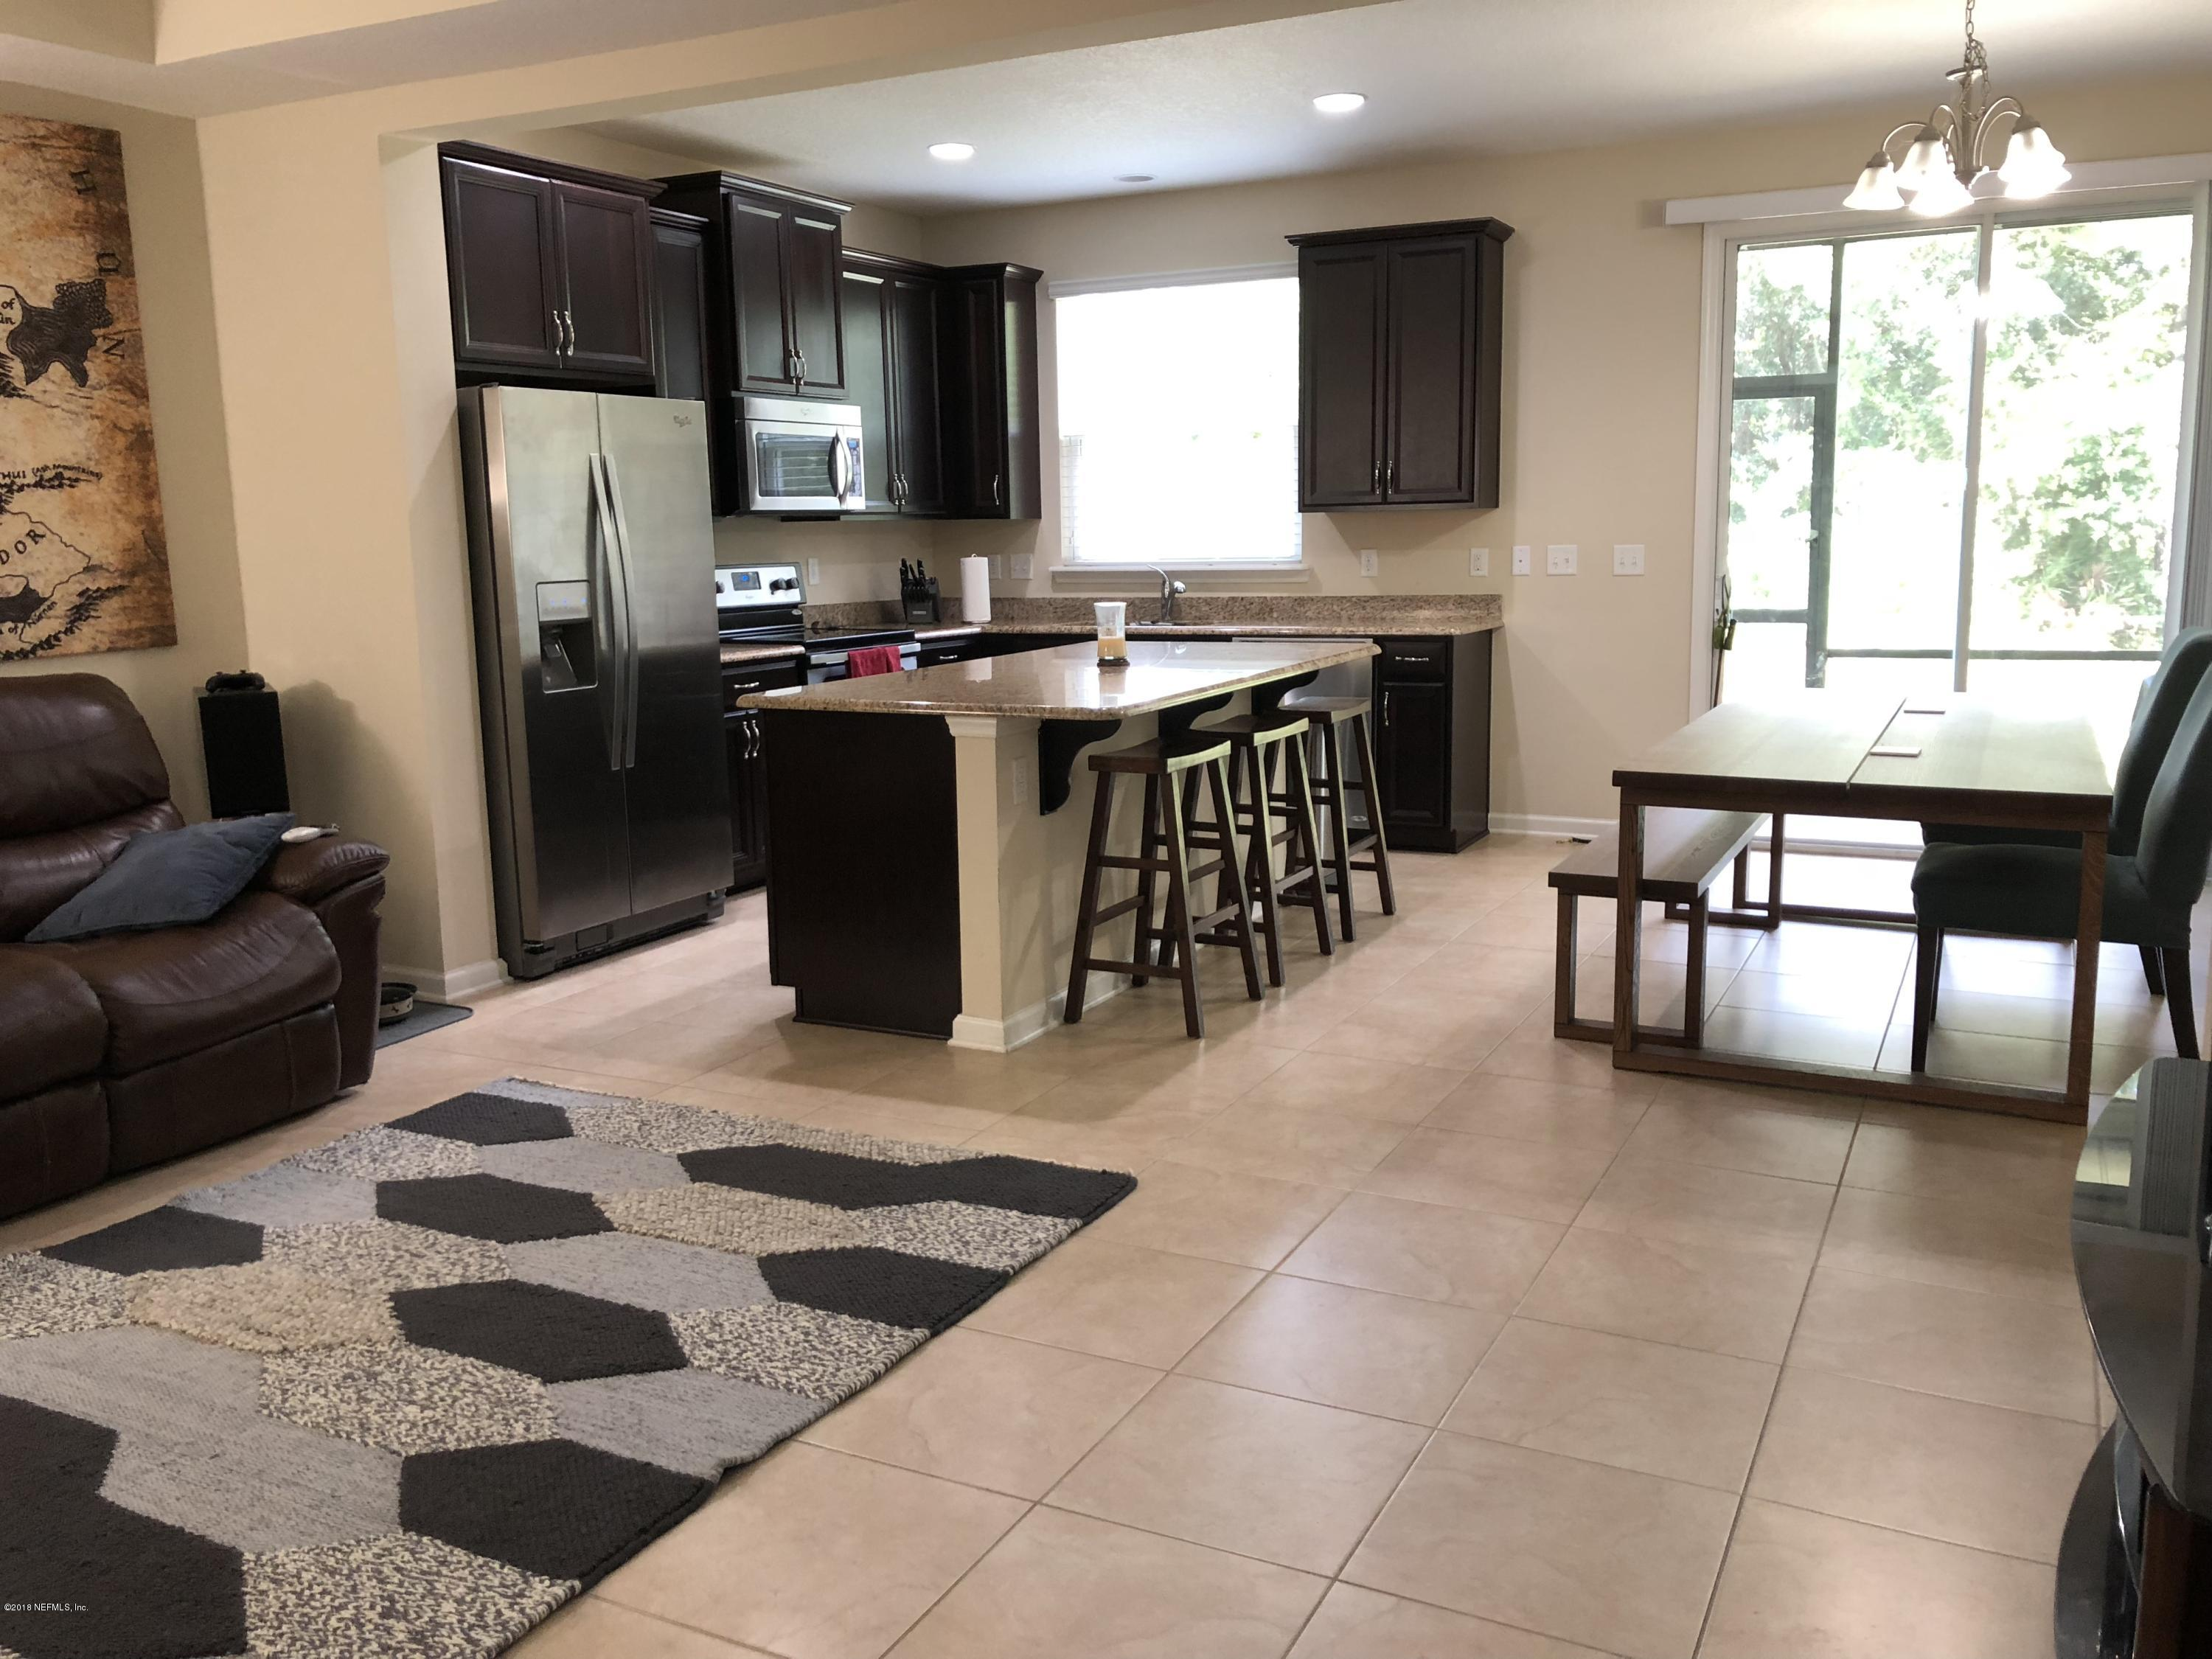 241 ADELANTO, ST AUGUSTINE, FLORIDA 32092, 3 Bedrooms Bedrooms, ,2 BathroomsBathrooms,Residential - townhome,For sale,ADELANTO,952800